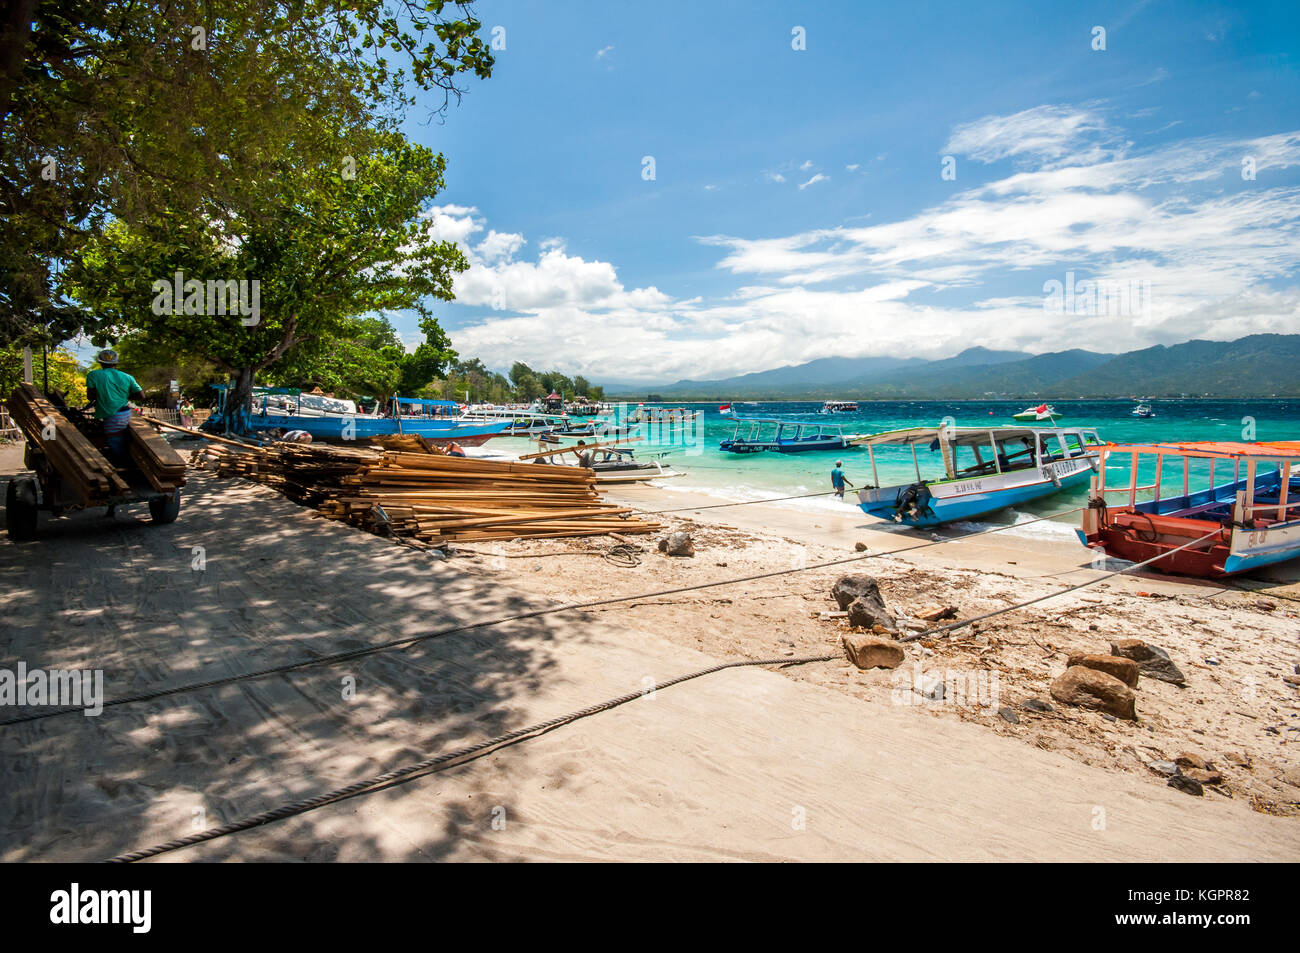 Gili Air harbour, traditional Indonesian boats moored up, Gili Islands, Indonesia, Southeast Asia, Asia - Stock Image